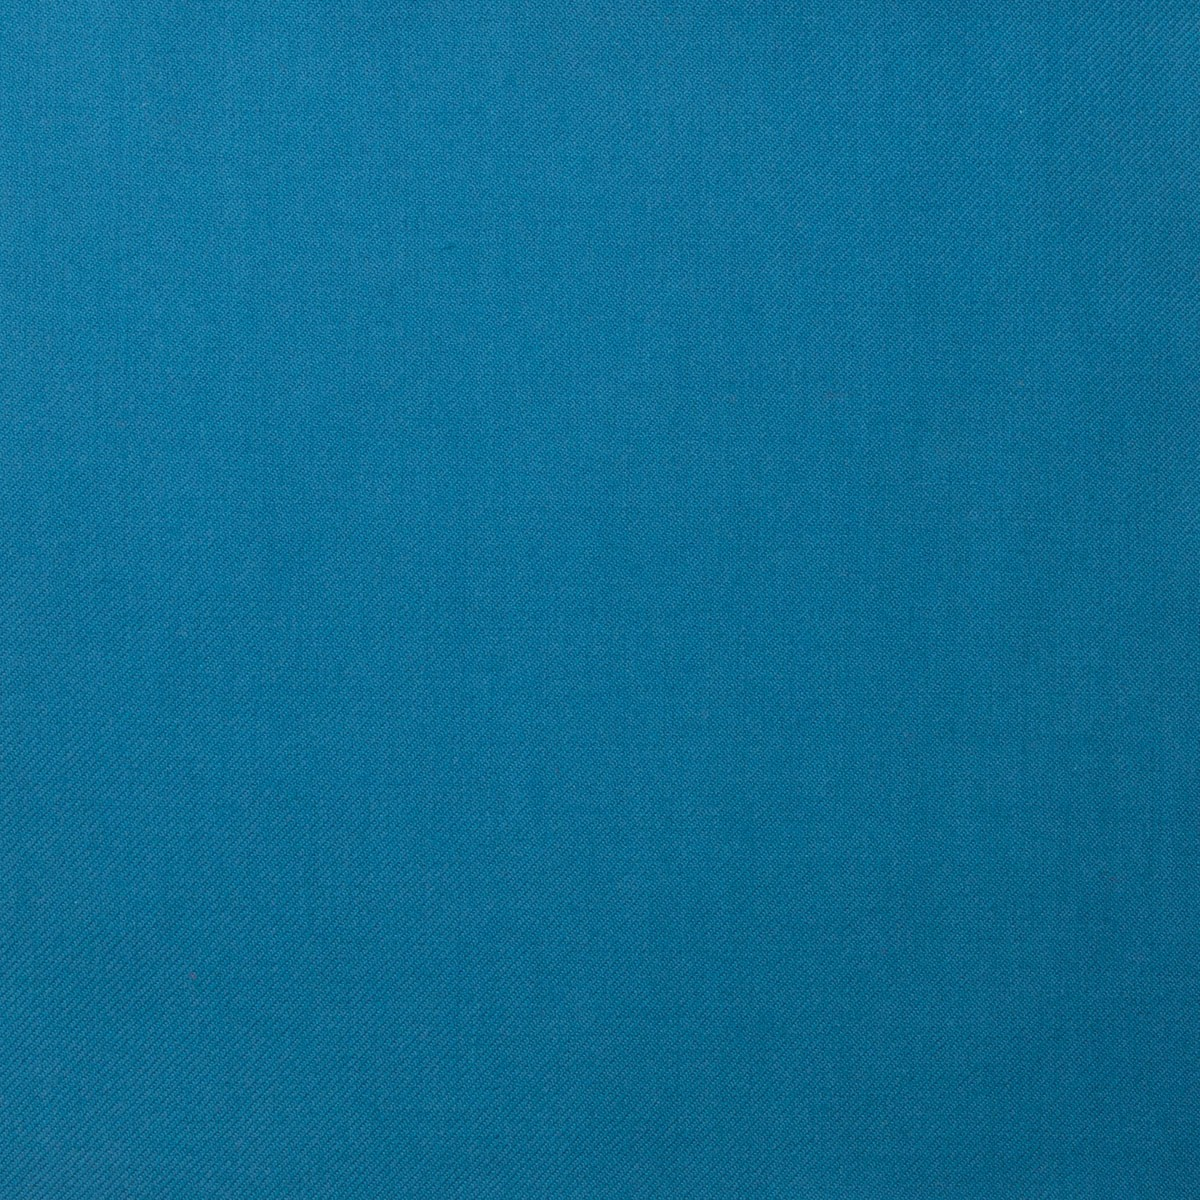 Blue Ancient Plain Fabric